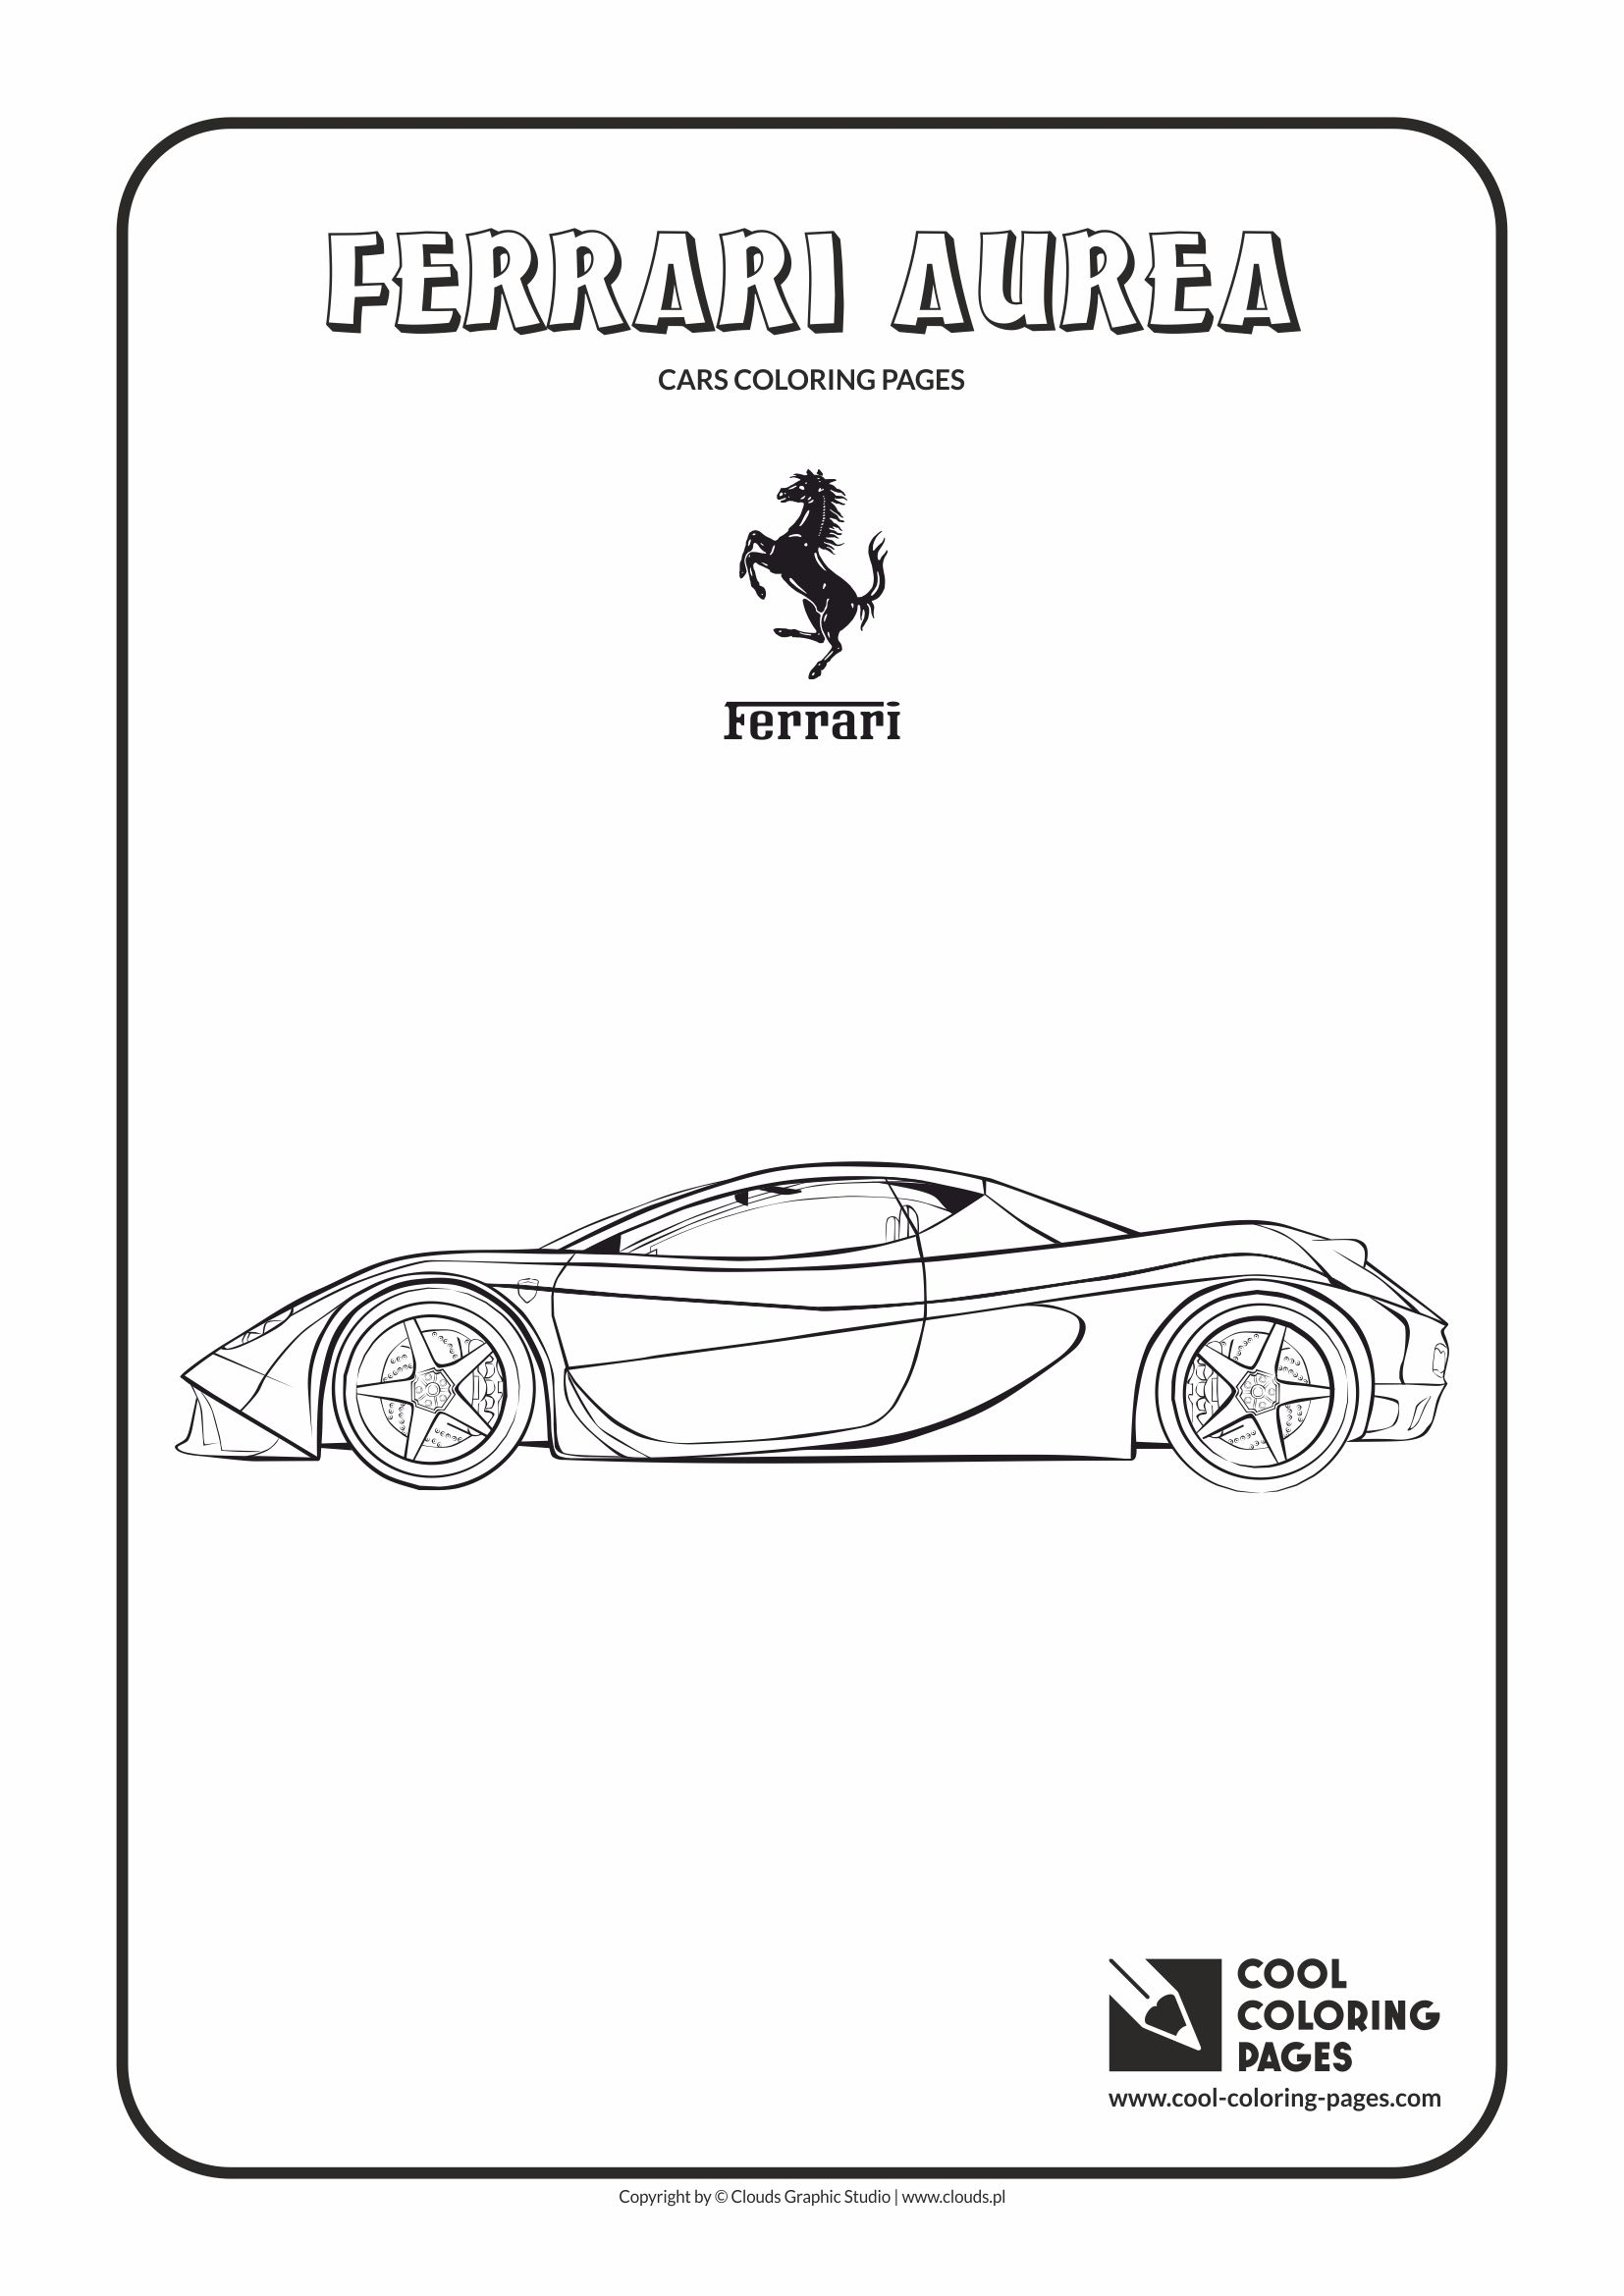 cool coloring pages vehicles ferrari aurea coloring page with ferrari aurea